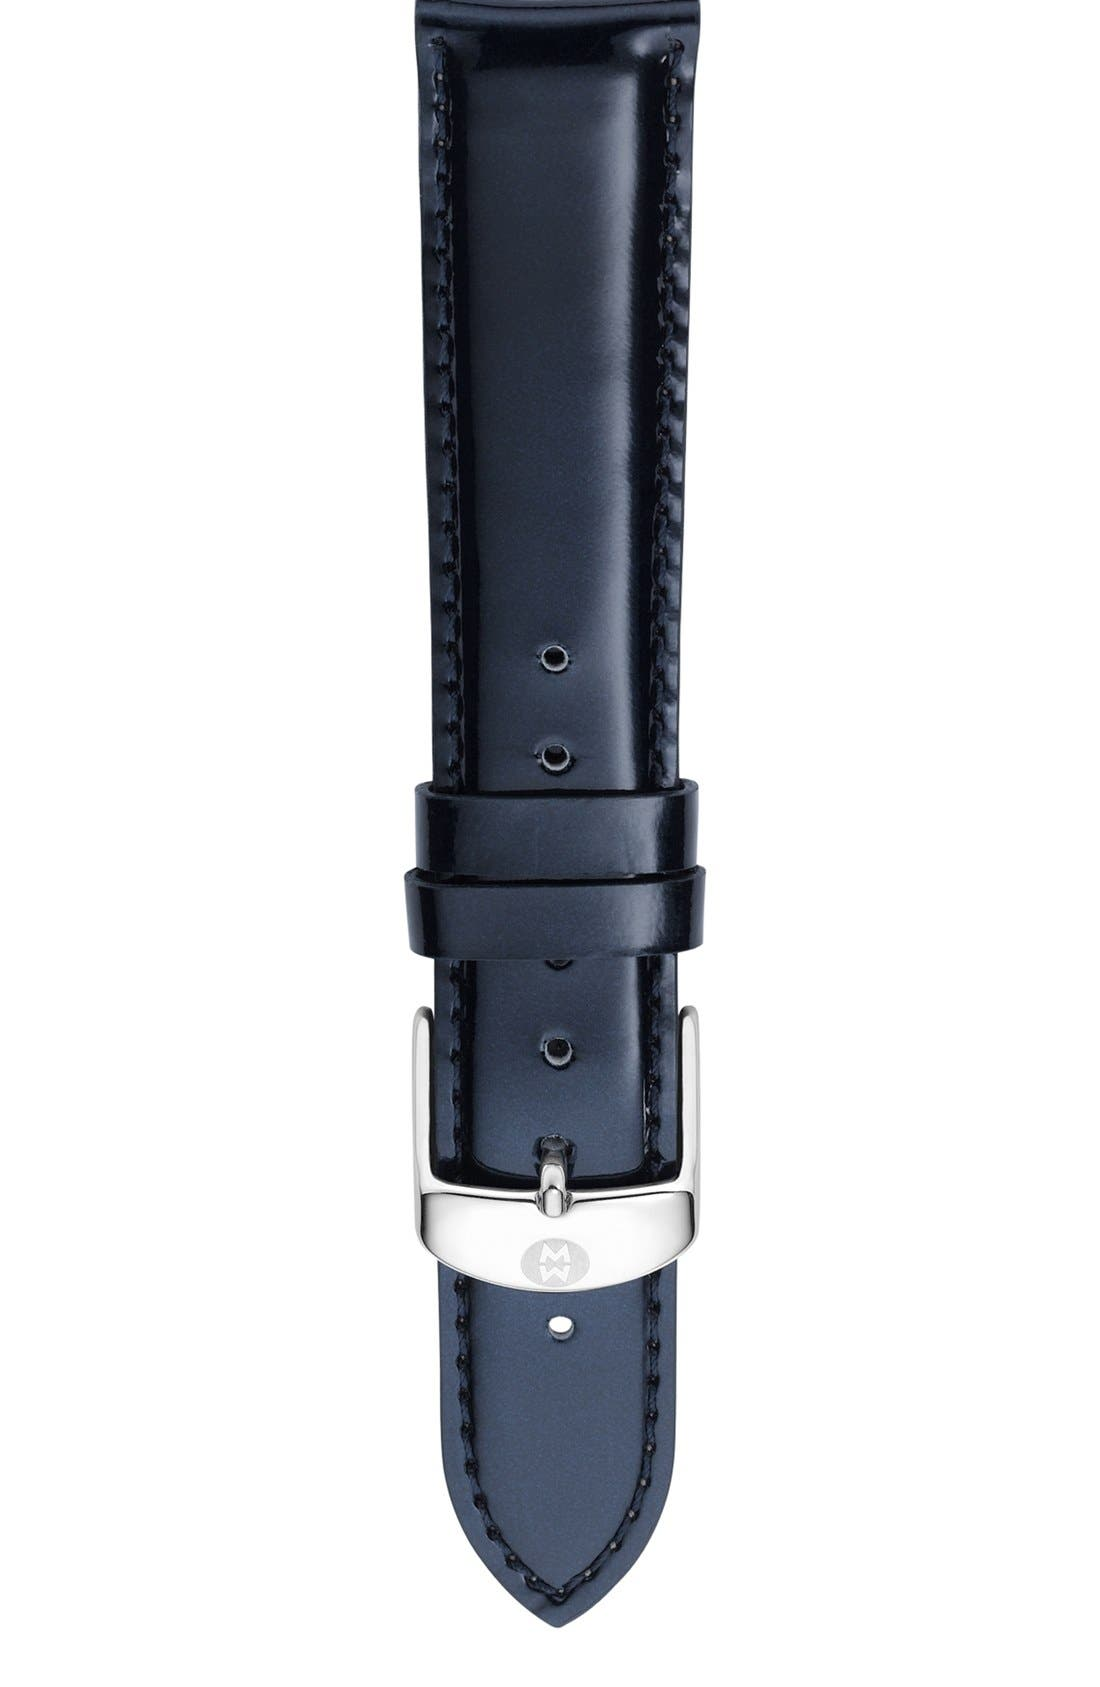 Main Image - MICHELE 'Deco Diamond' Watch Case & 18mm Patent Leather Strap